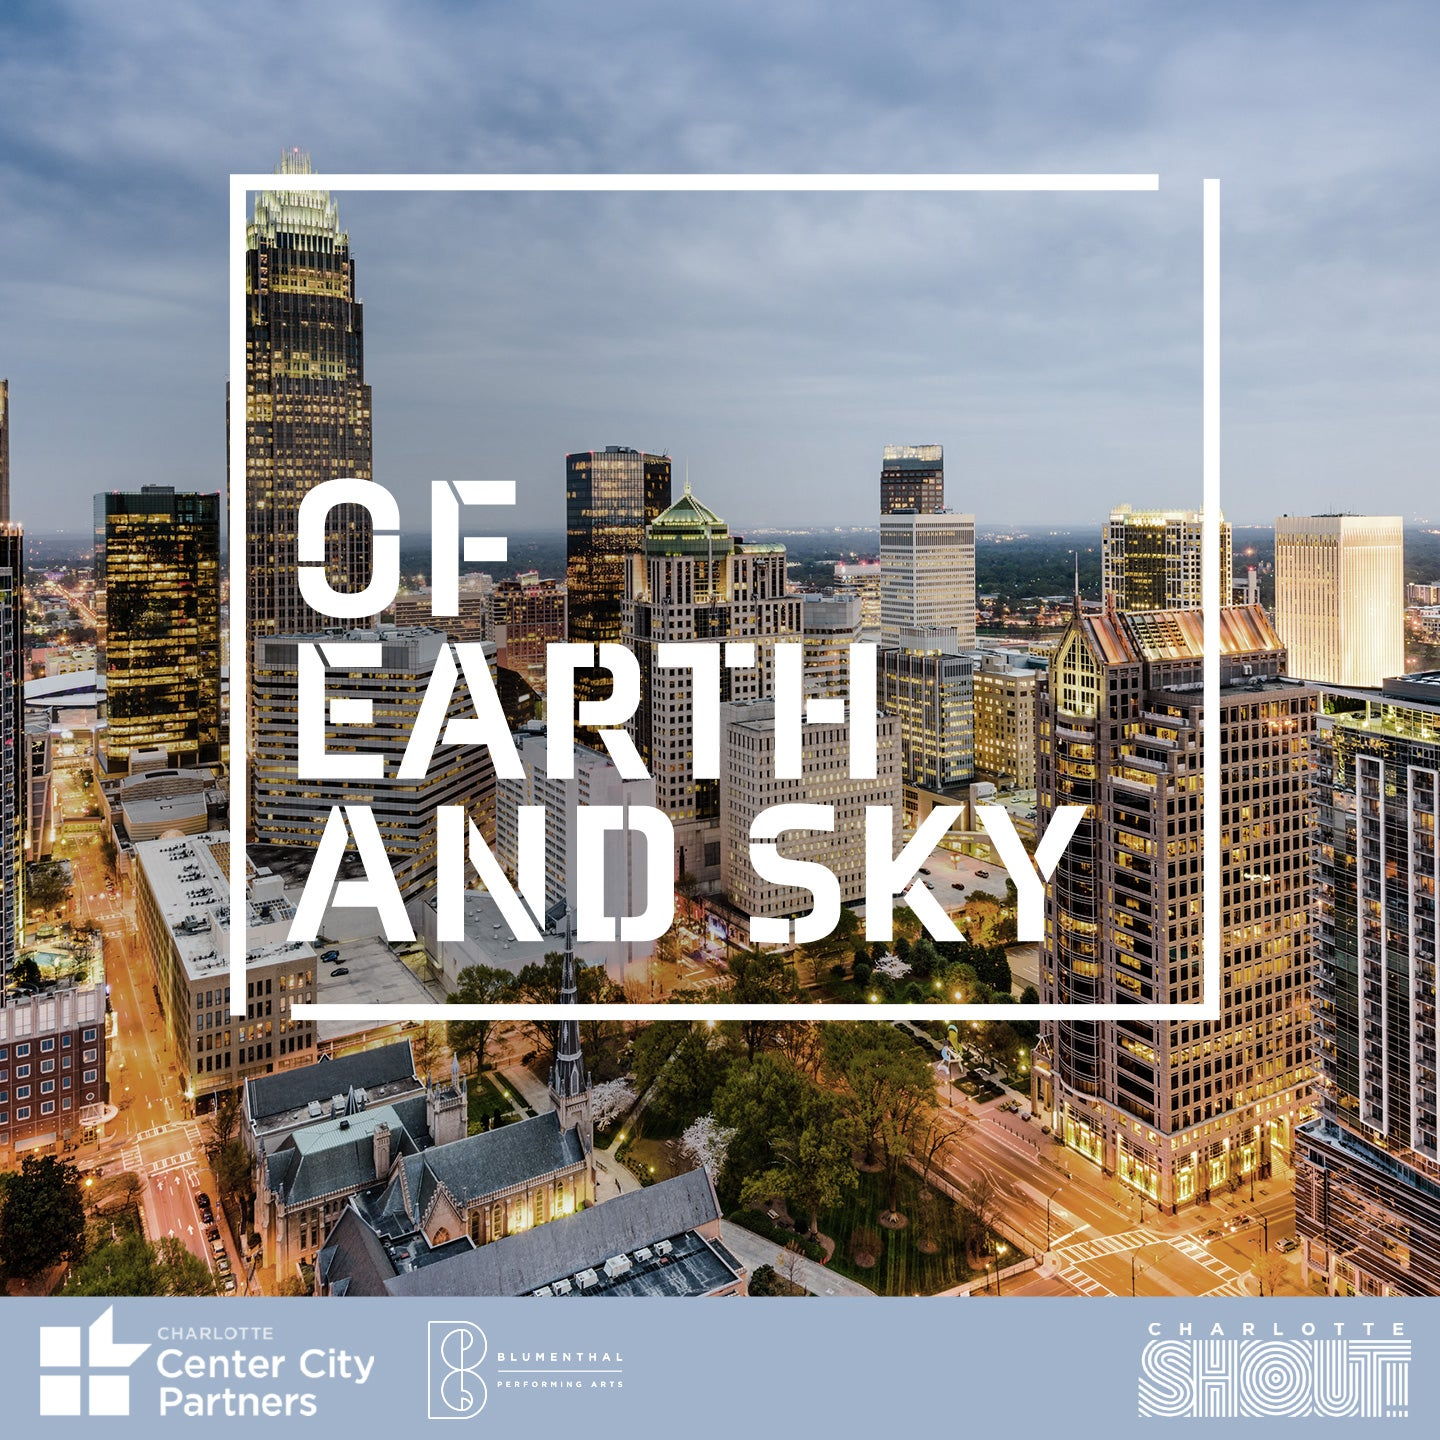 'Of Earth and Sky' Poetry Workshop